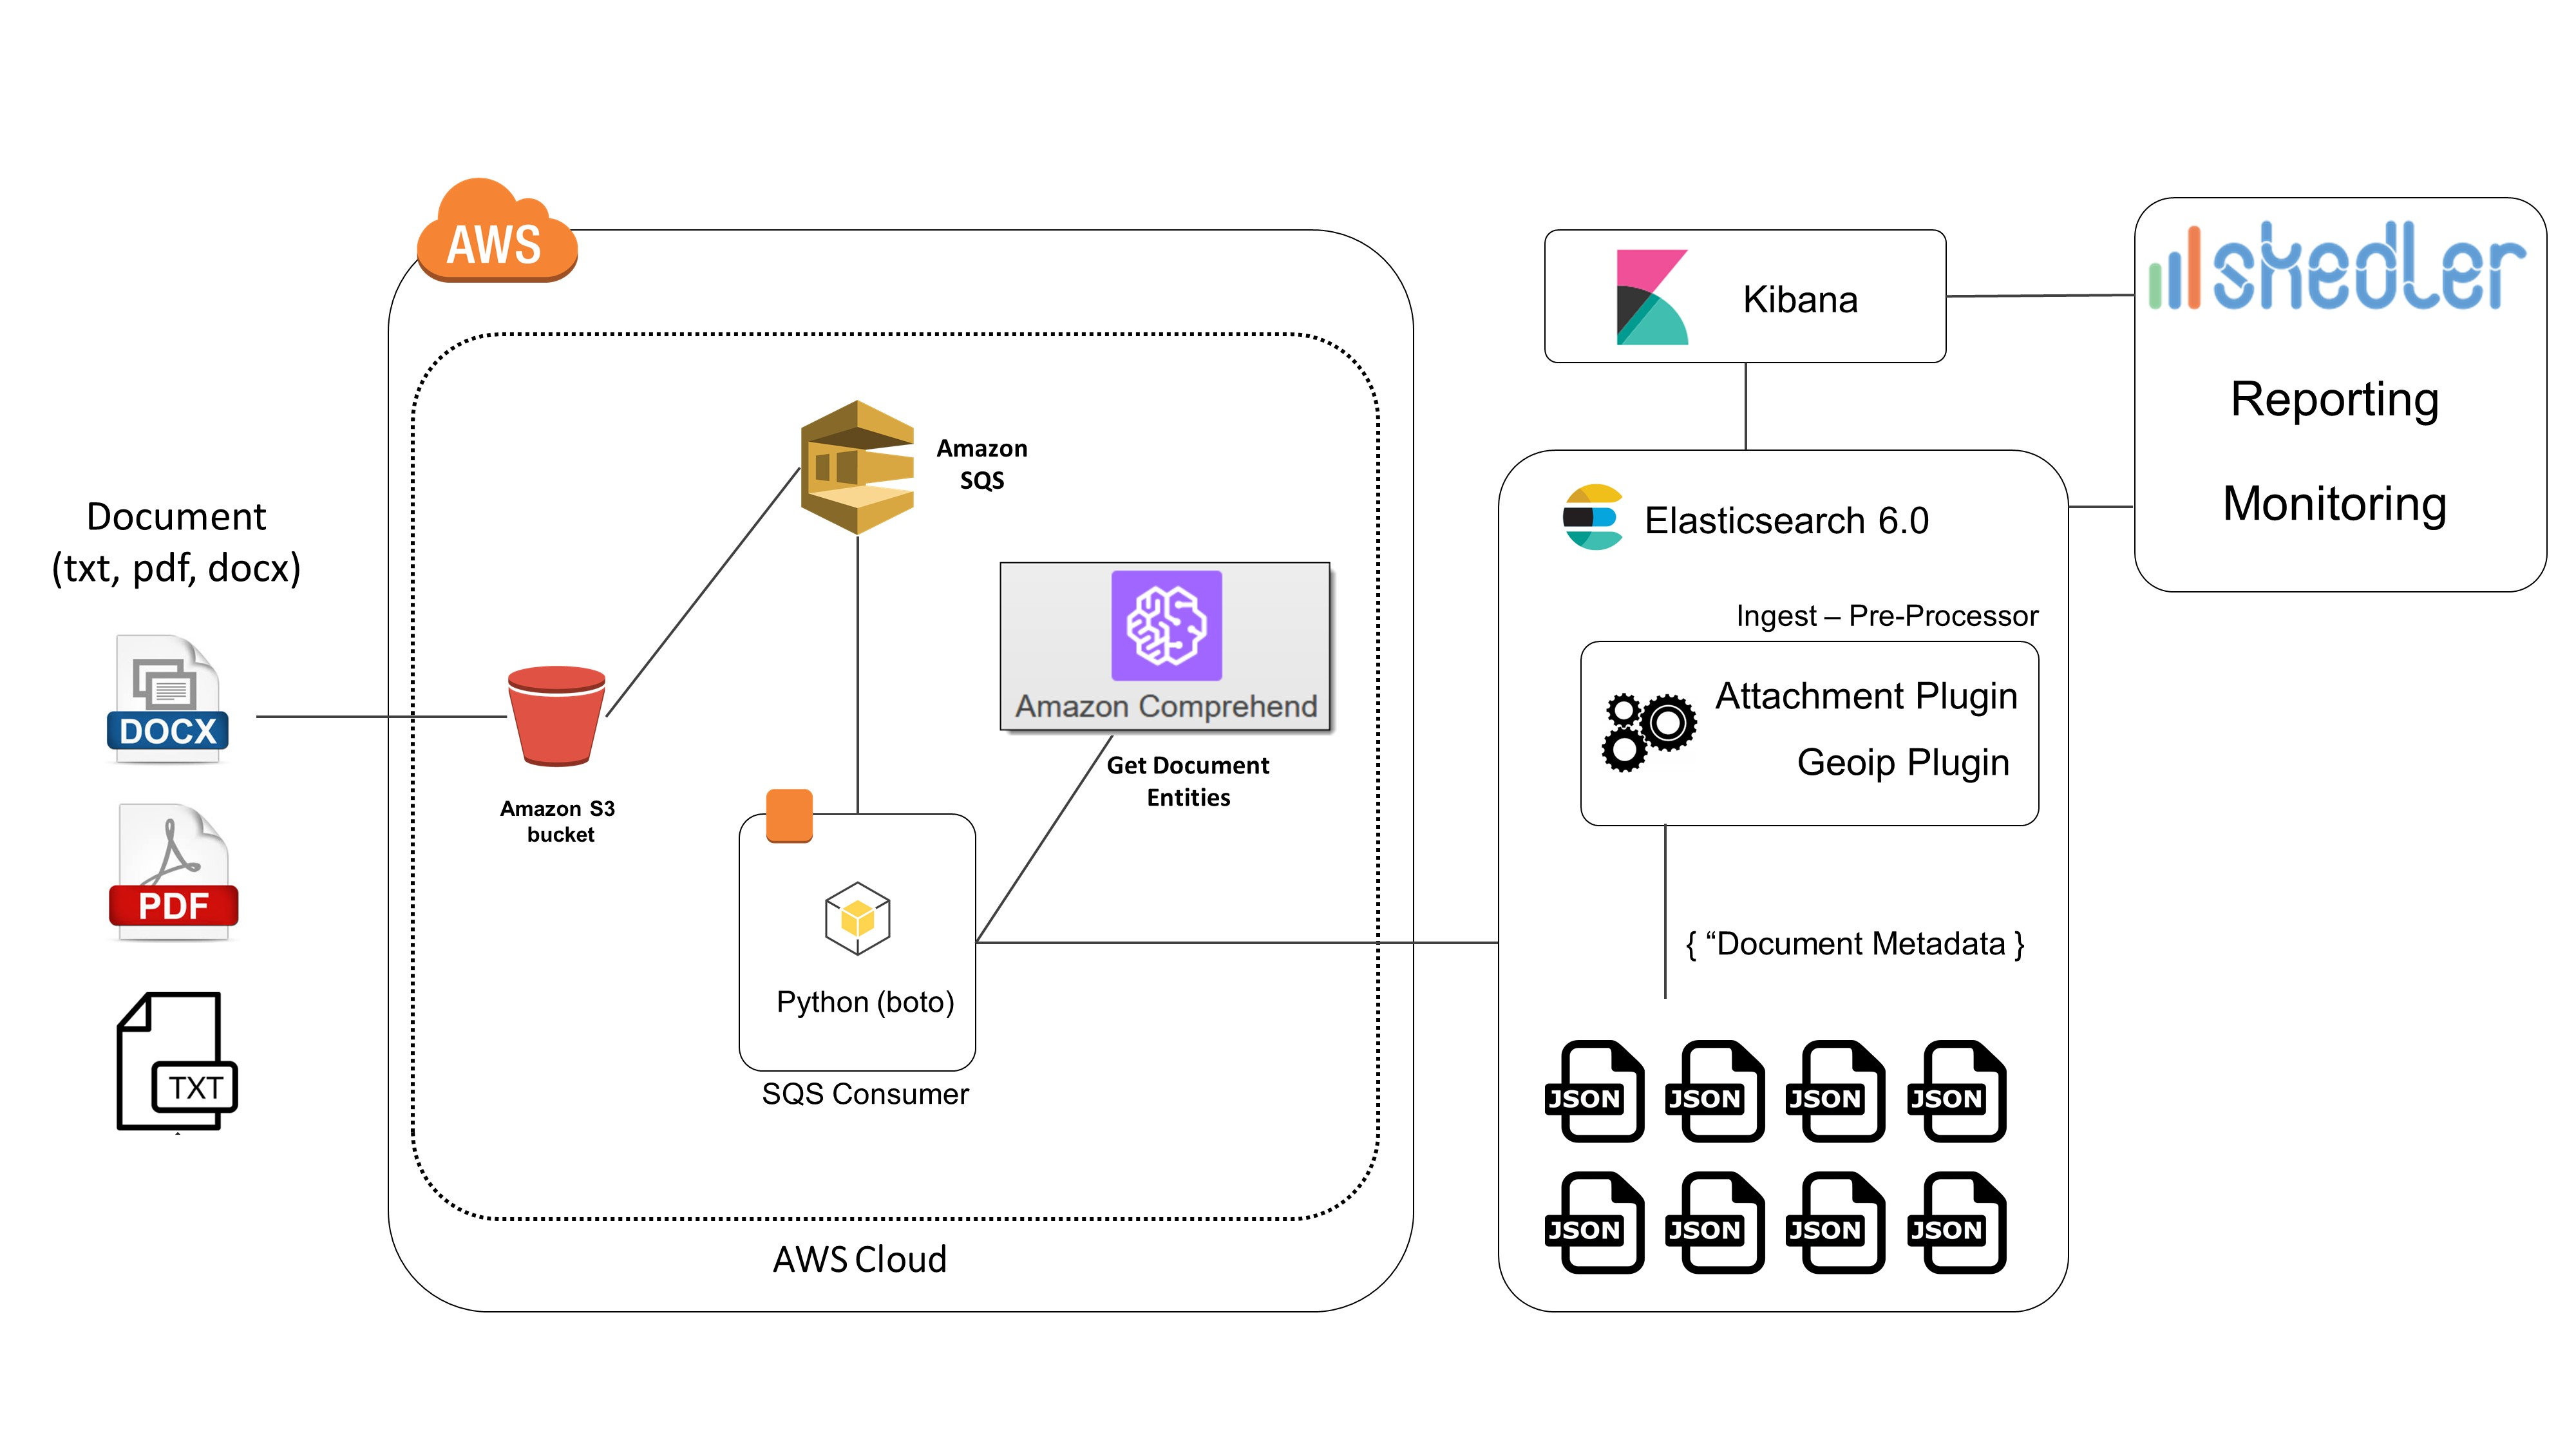 Document Text Analytics using Amazon(AWS) Comprehend - Elasticsearch 6.0